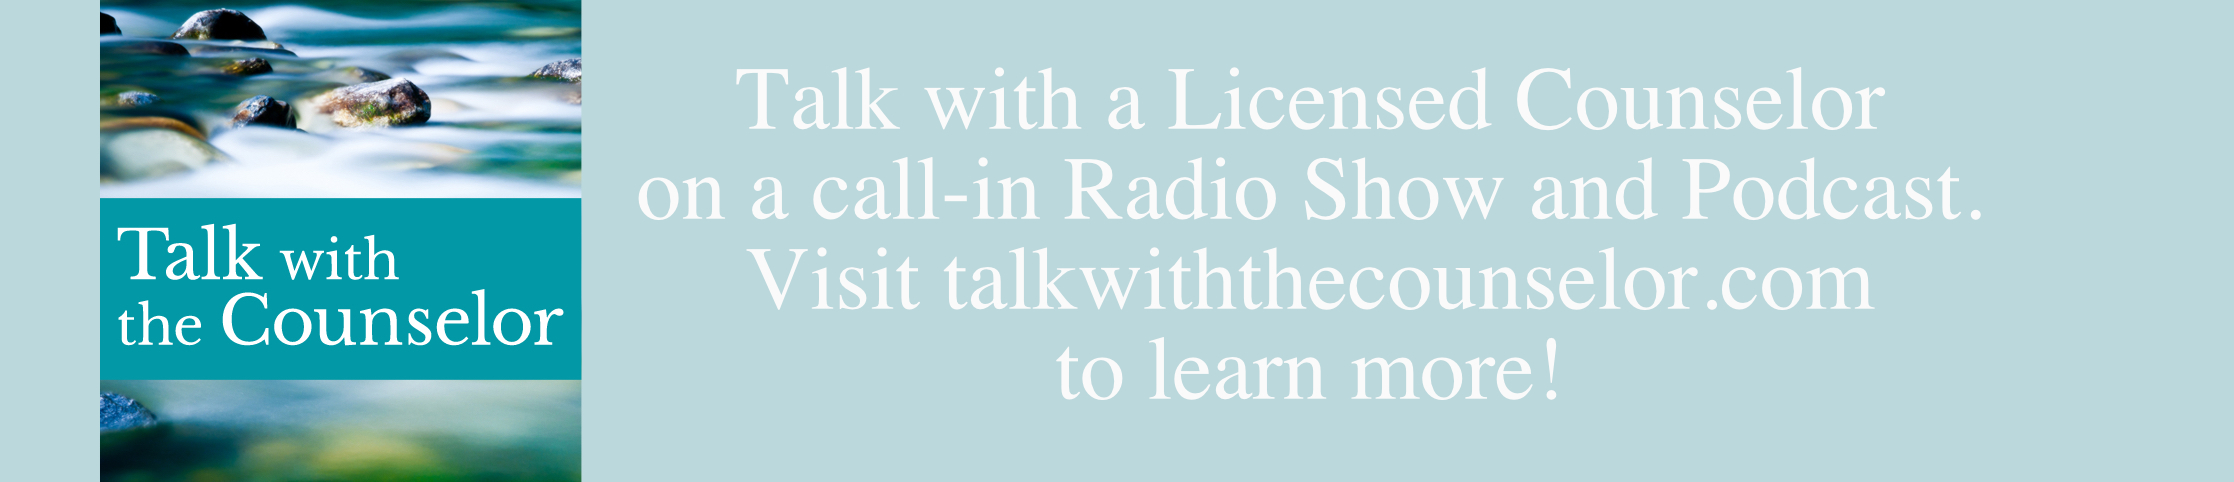 Talk with a licensed counselor on a call-in radio show and podcast. Visit talkwiththecounselor.com to learn more!